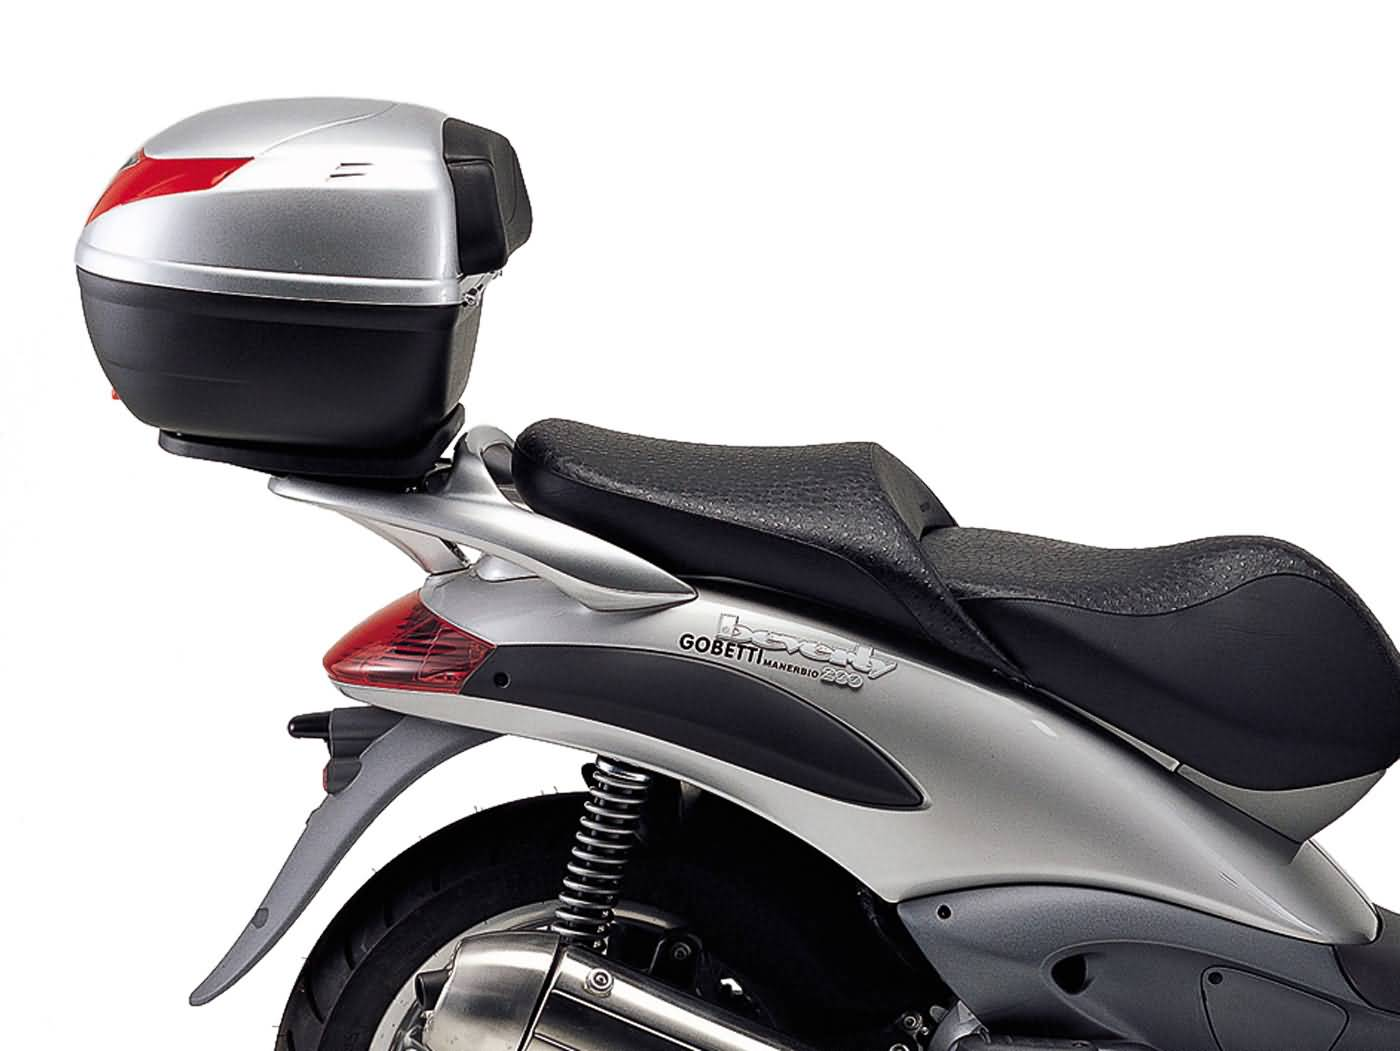 Givi trunks - useful accessories for any motorcycle